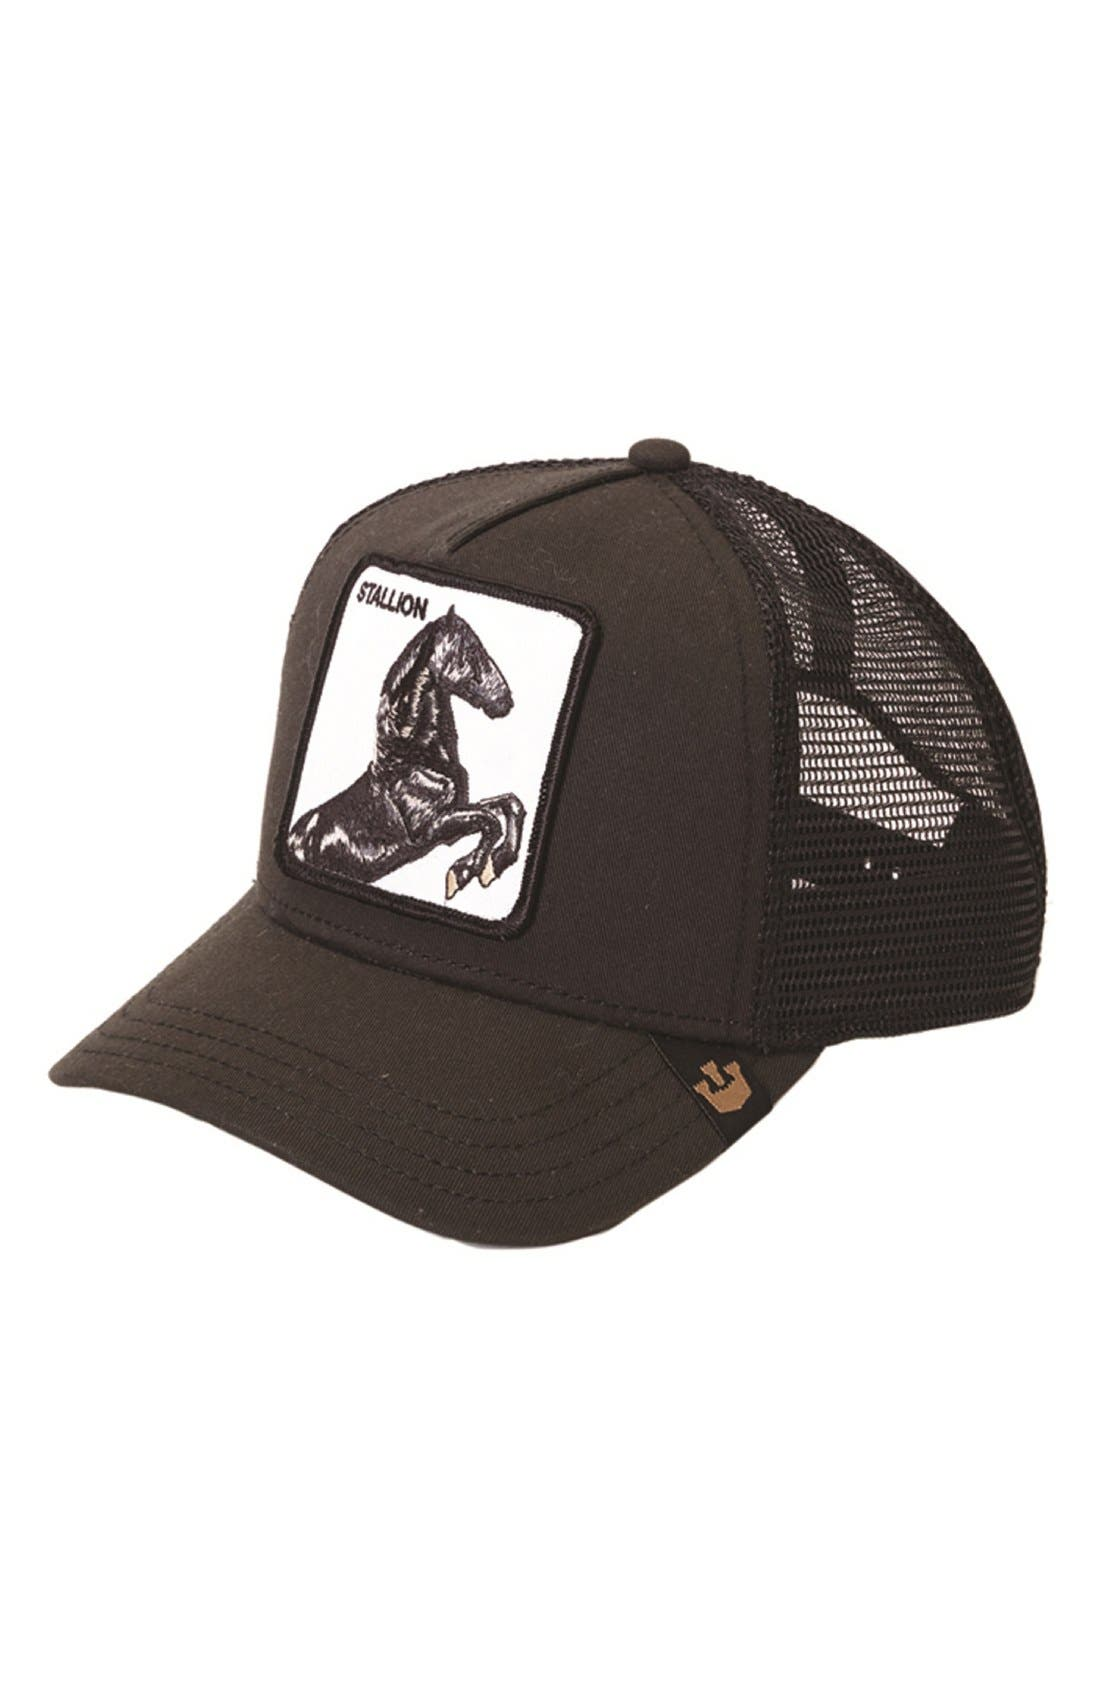 Main Image - Goorin Brothers 'Stallion' Trucker Hat